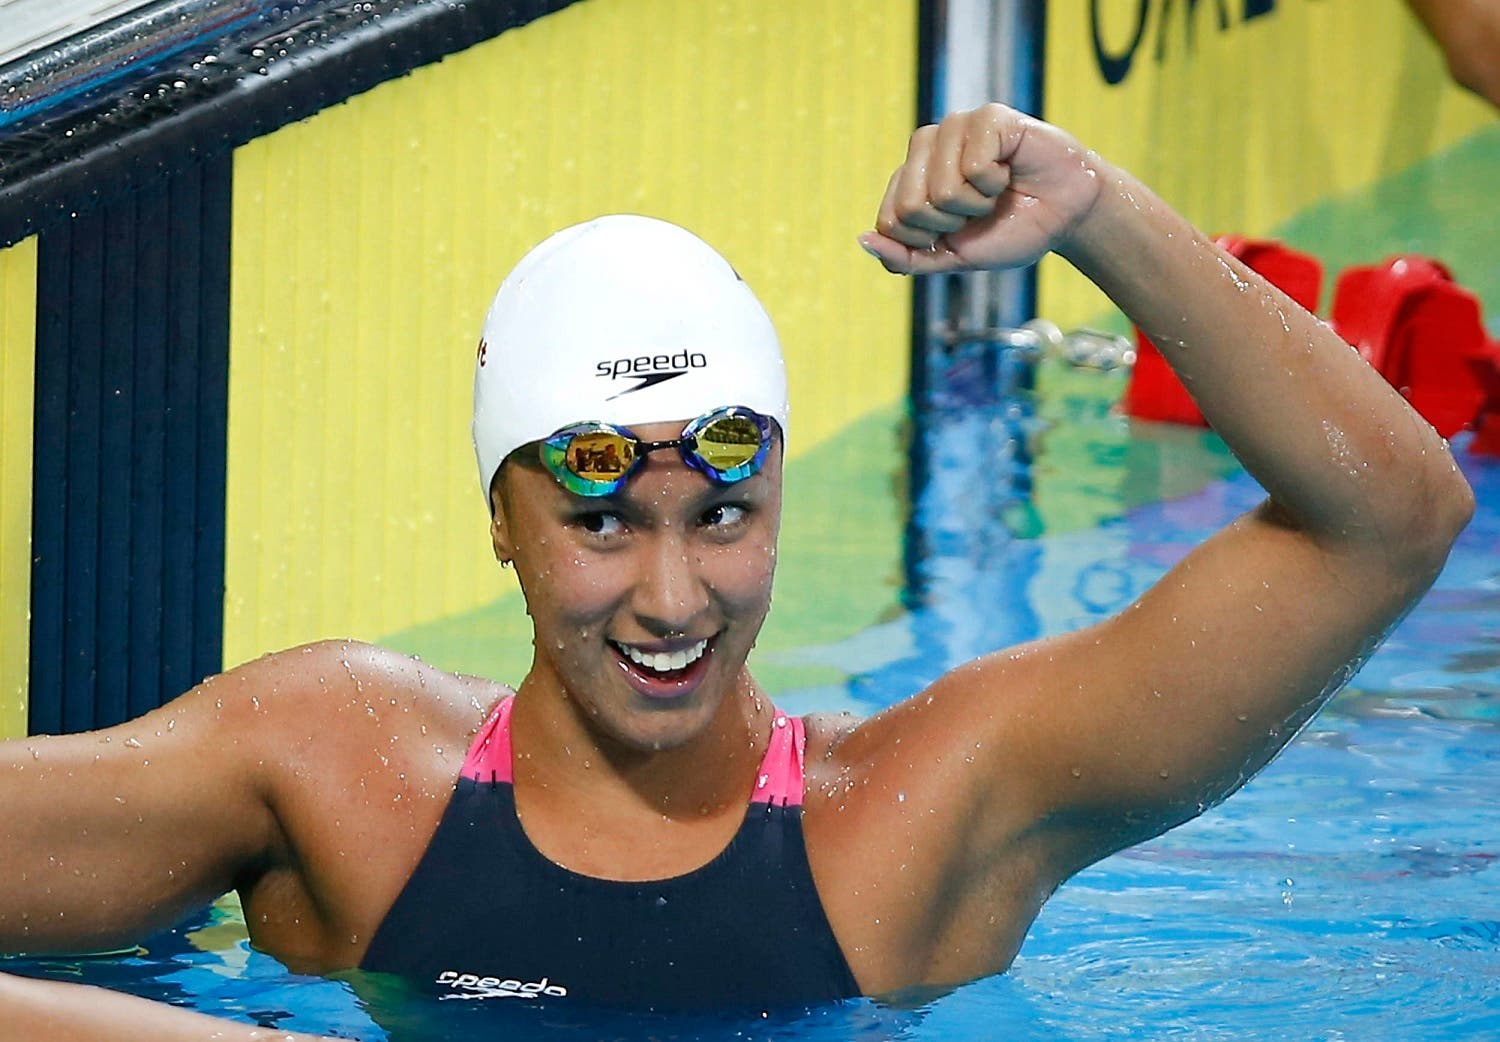 Jasmine al-Khaldi from the Philippines celebrates after winning the women's 100- meter freestyle during the 27th Southeast Asian (SEA) Games in Naypyitaw, Myanmar, Thursday, Dec. 12, 2013. (AP)